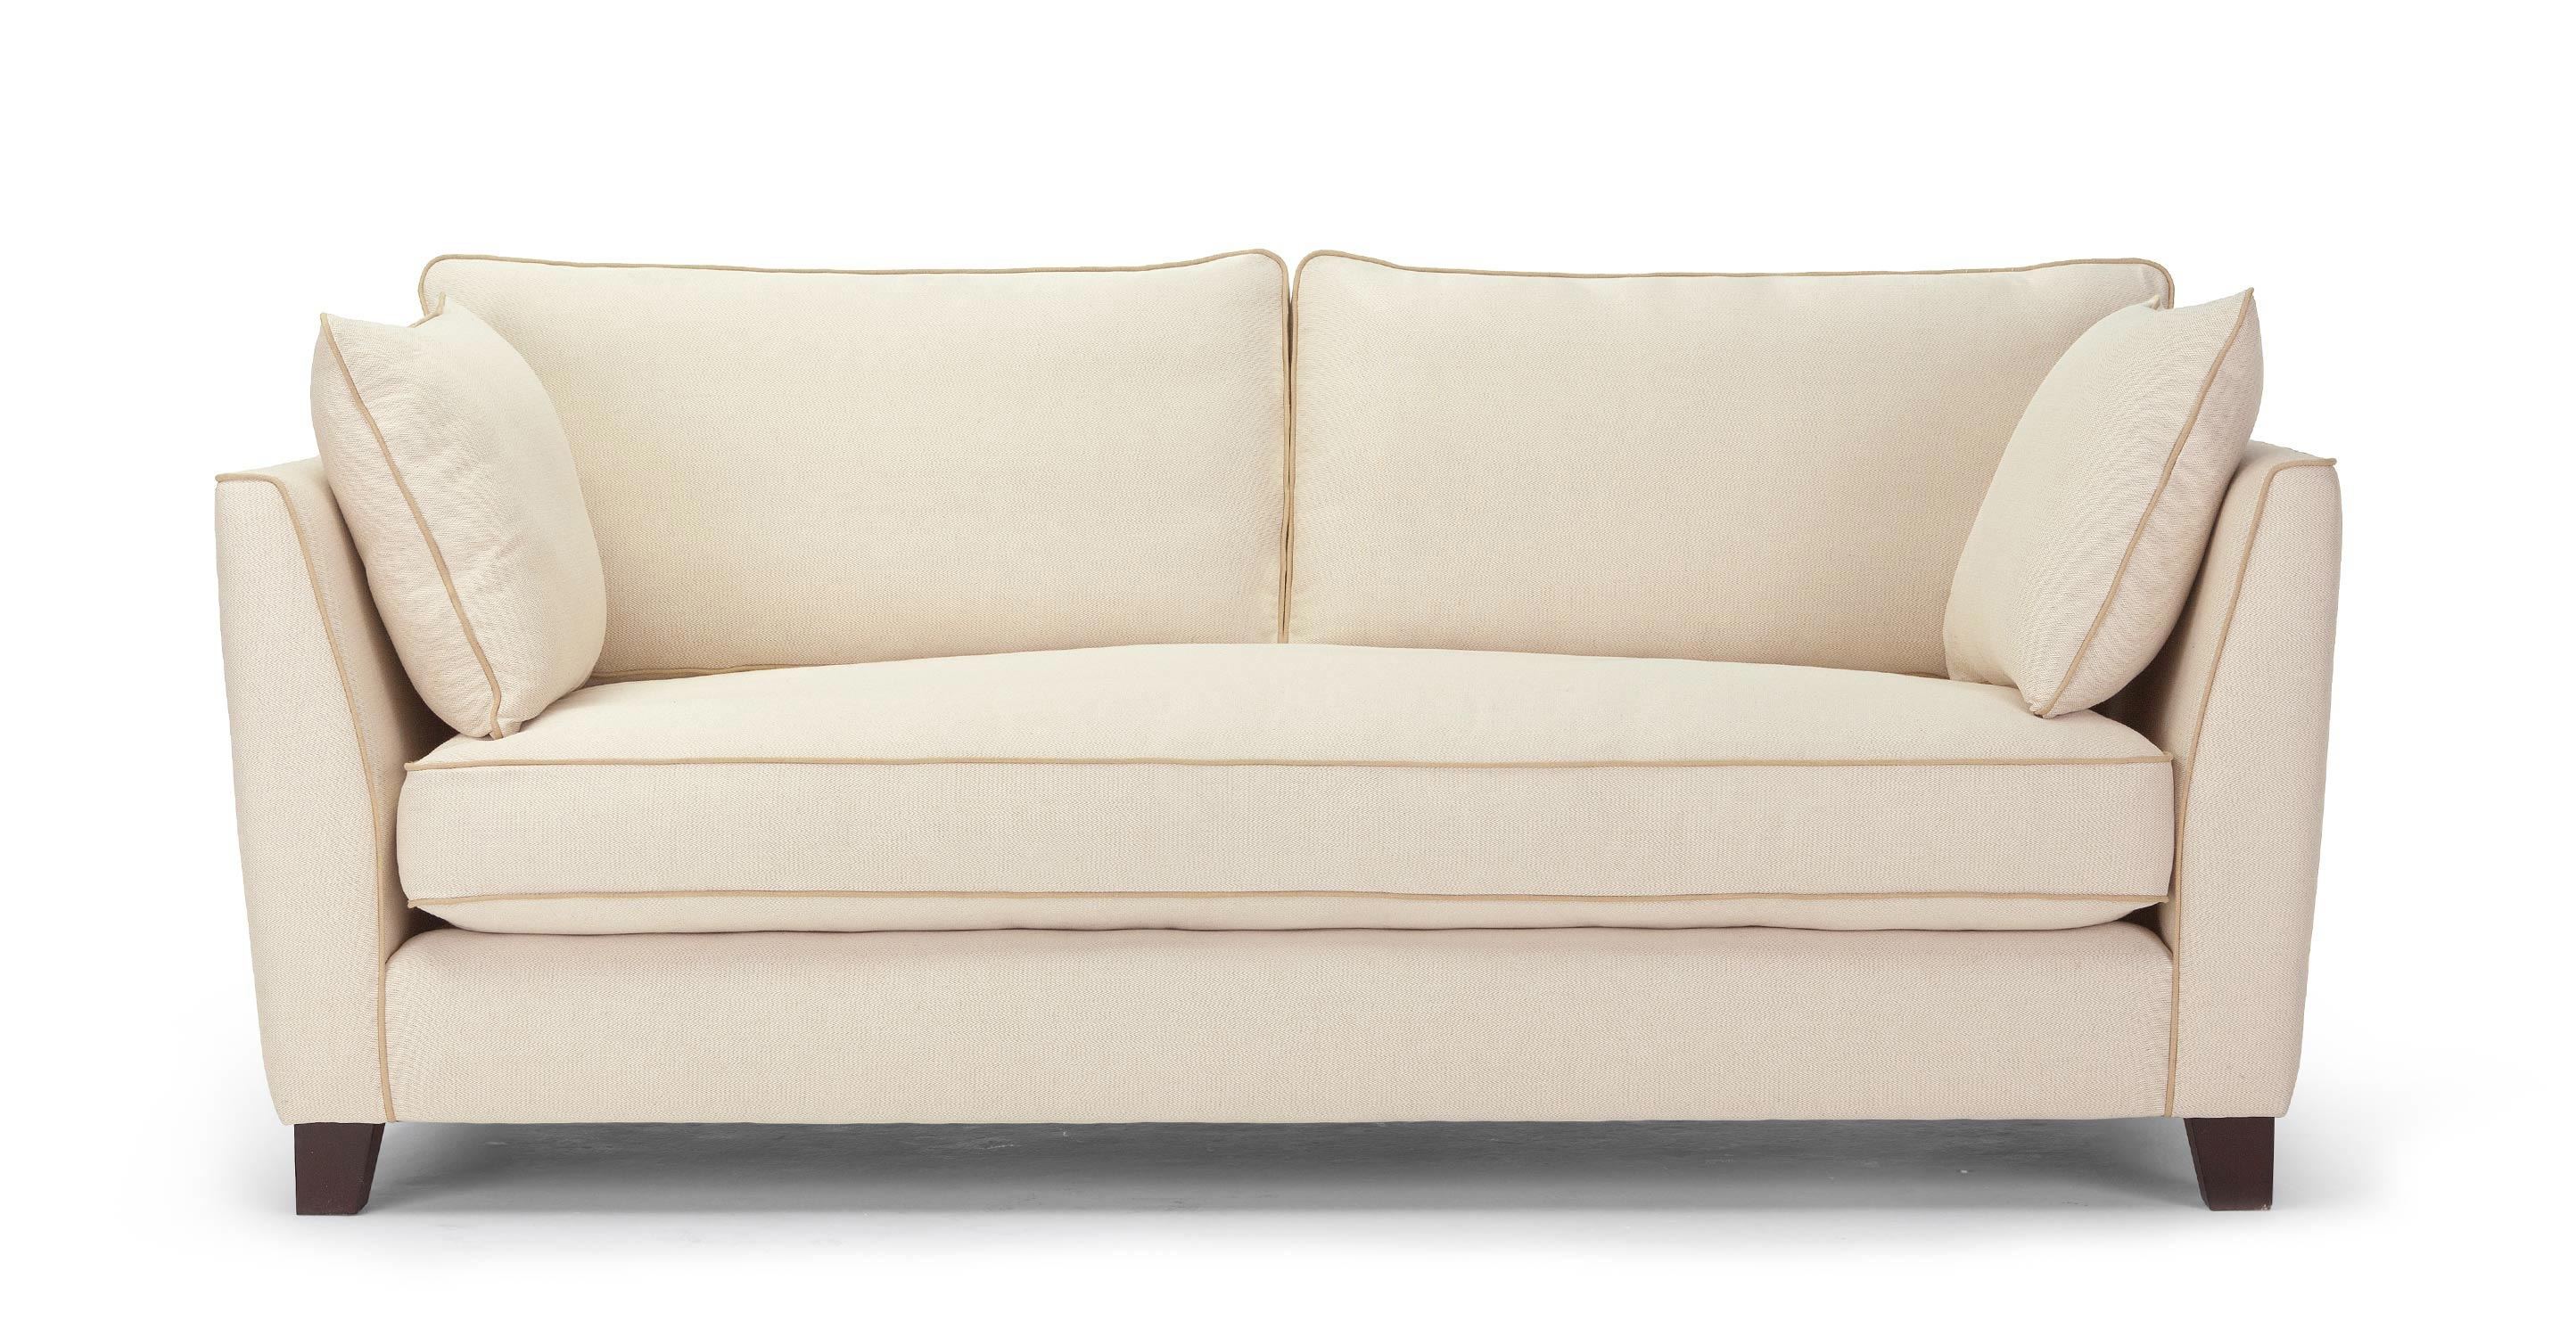 Cream sofa gabrielle living room sofa loveseat cream 334603 thesofa Couches and loveseats